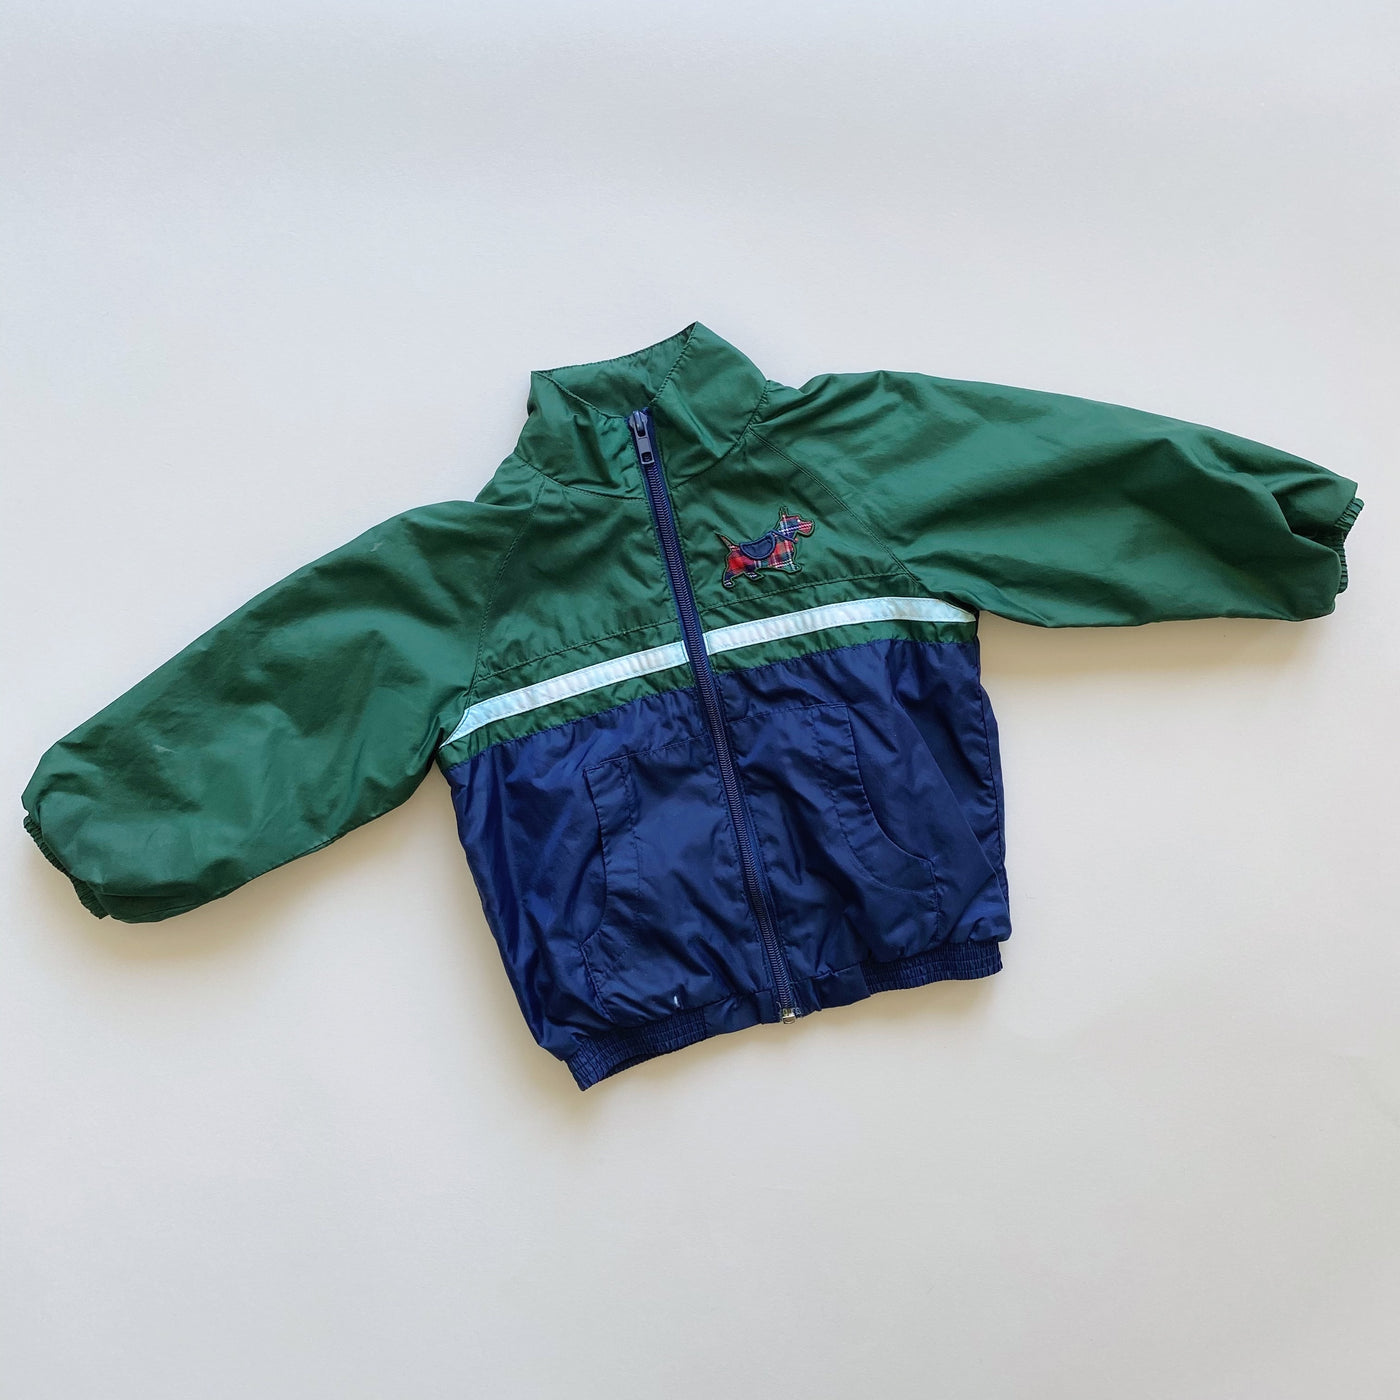 Copper Key Windbreaker Jacket / Size 2T